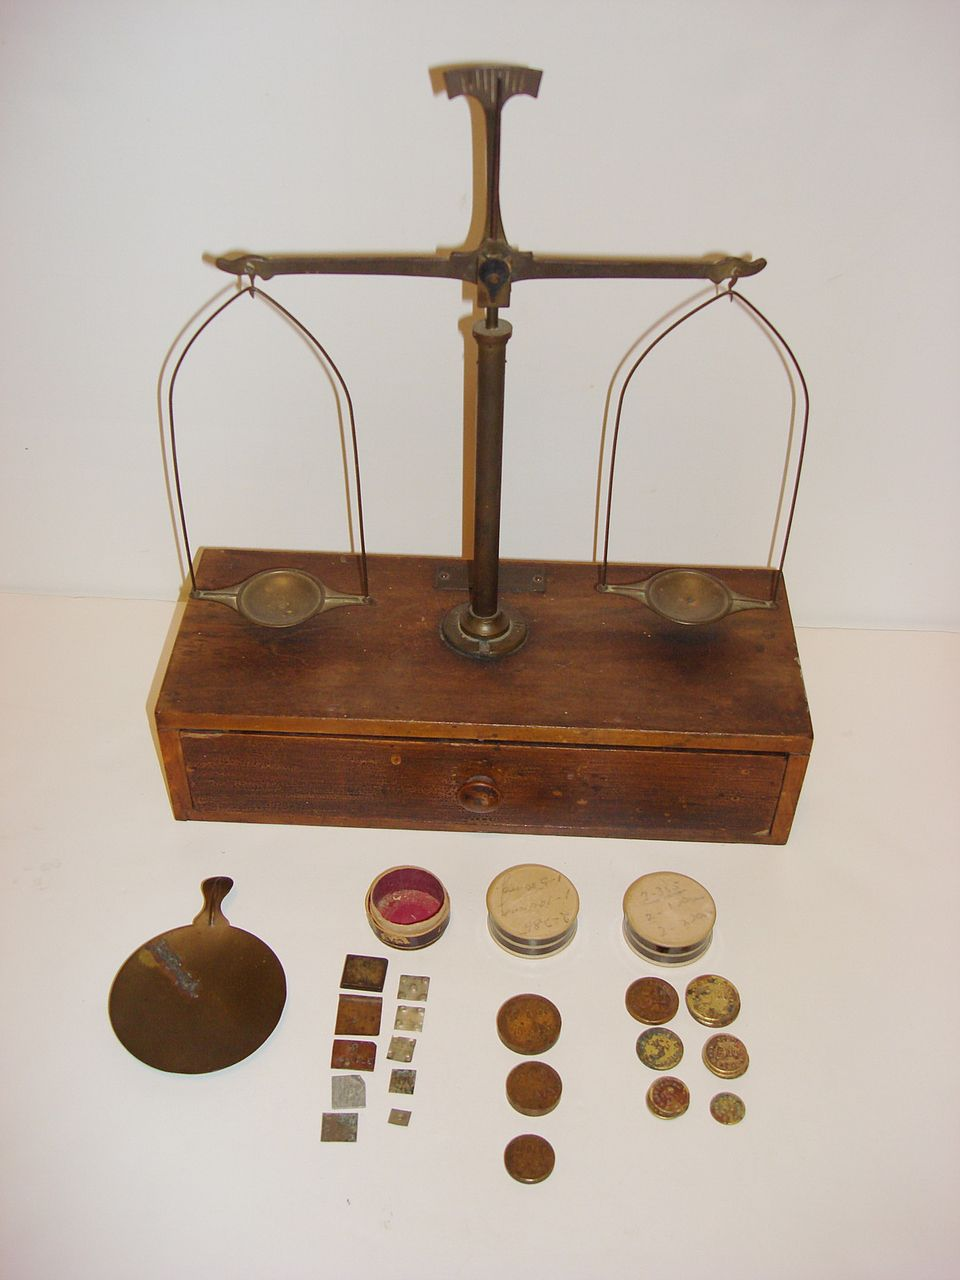 Vintage Henry Troemner Balance Scale With The Weights Sold